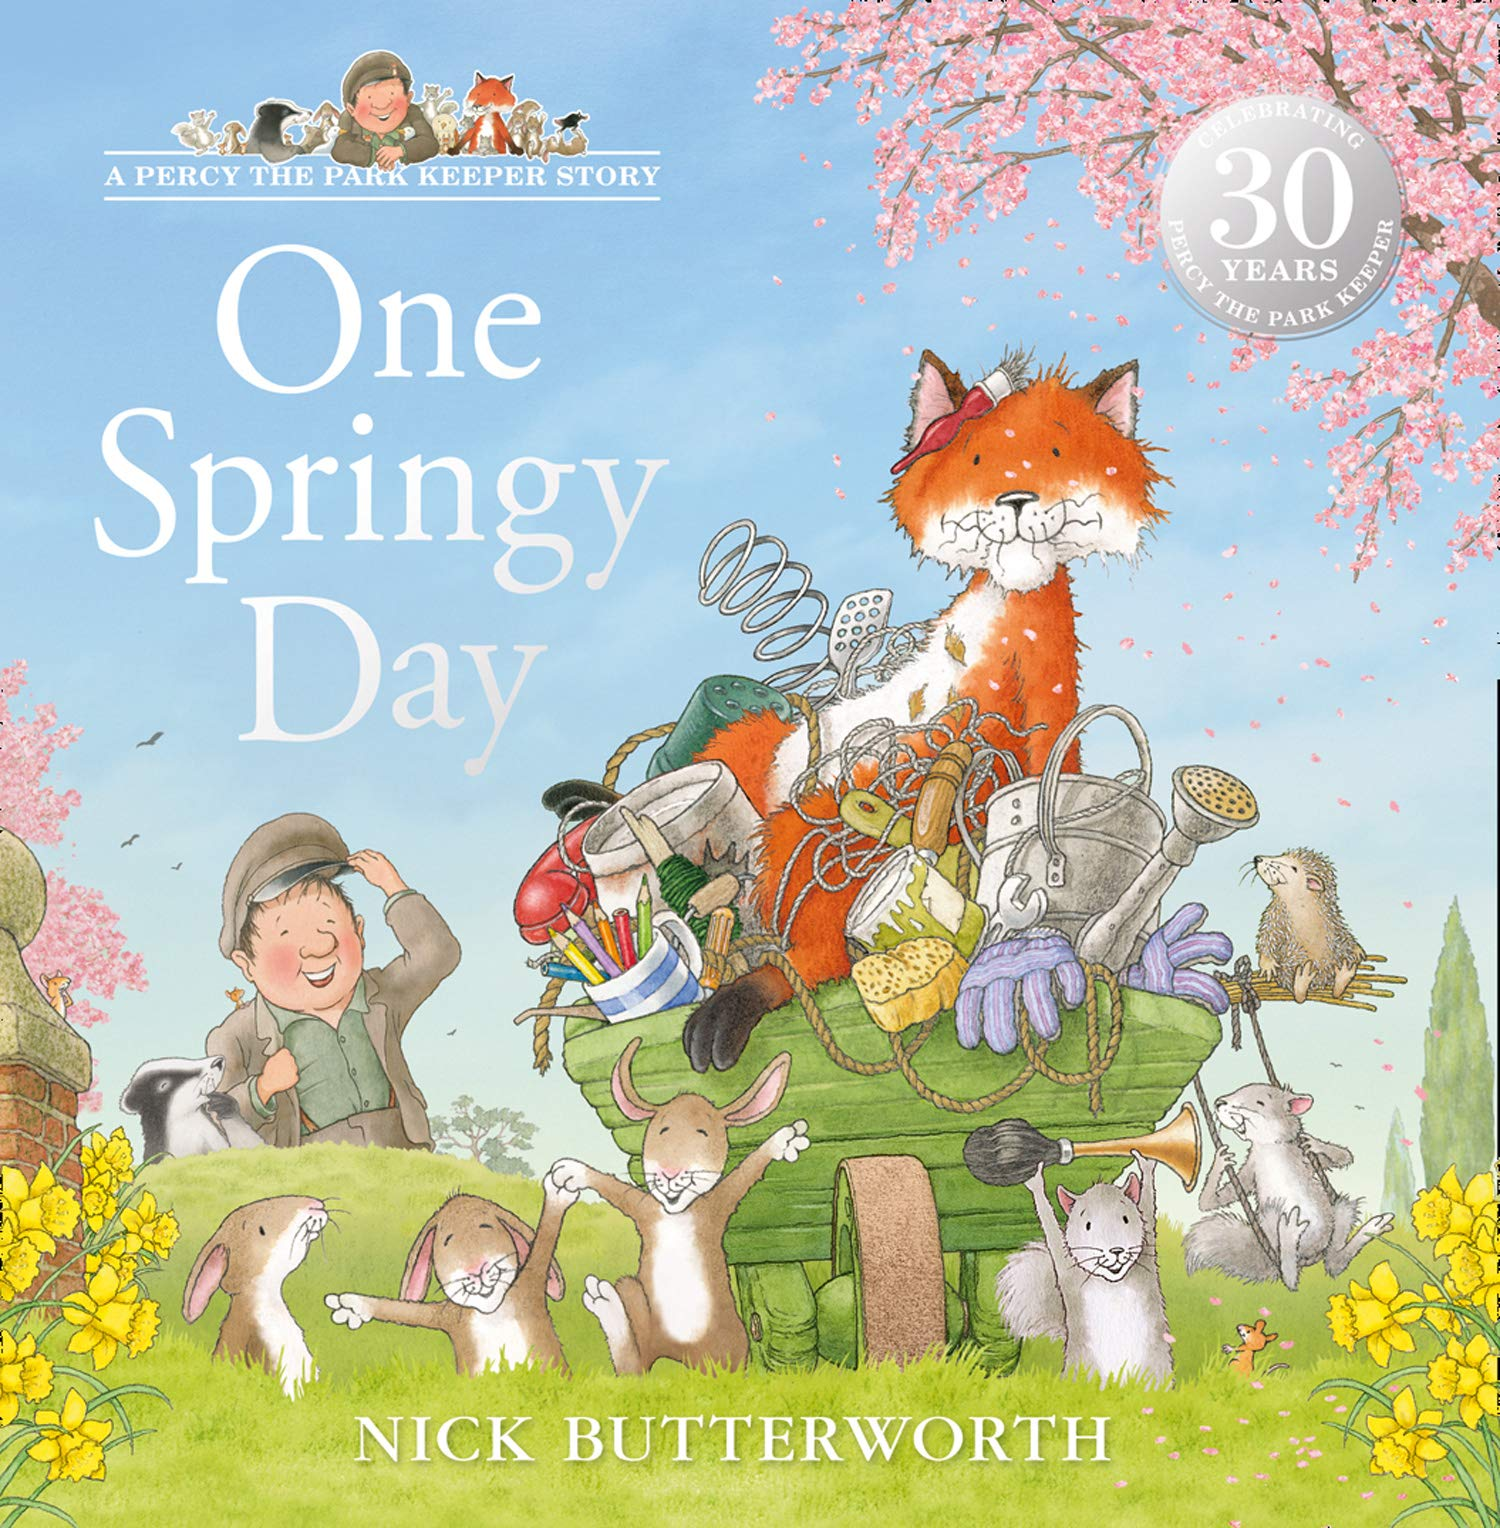 One Springy Day (A Percy the Park Keeper Story): Amazon.co.uk ...